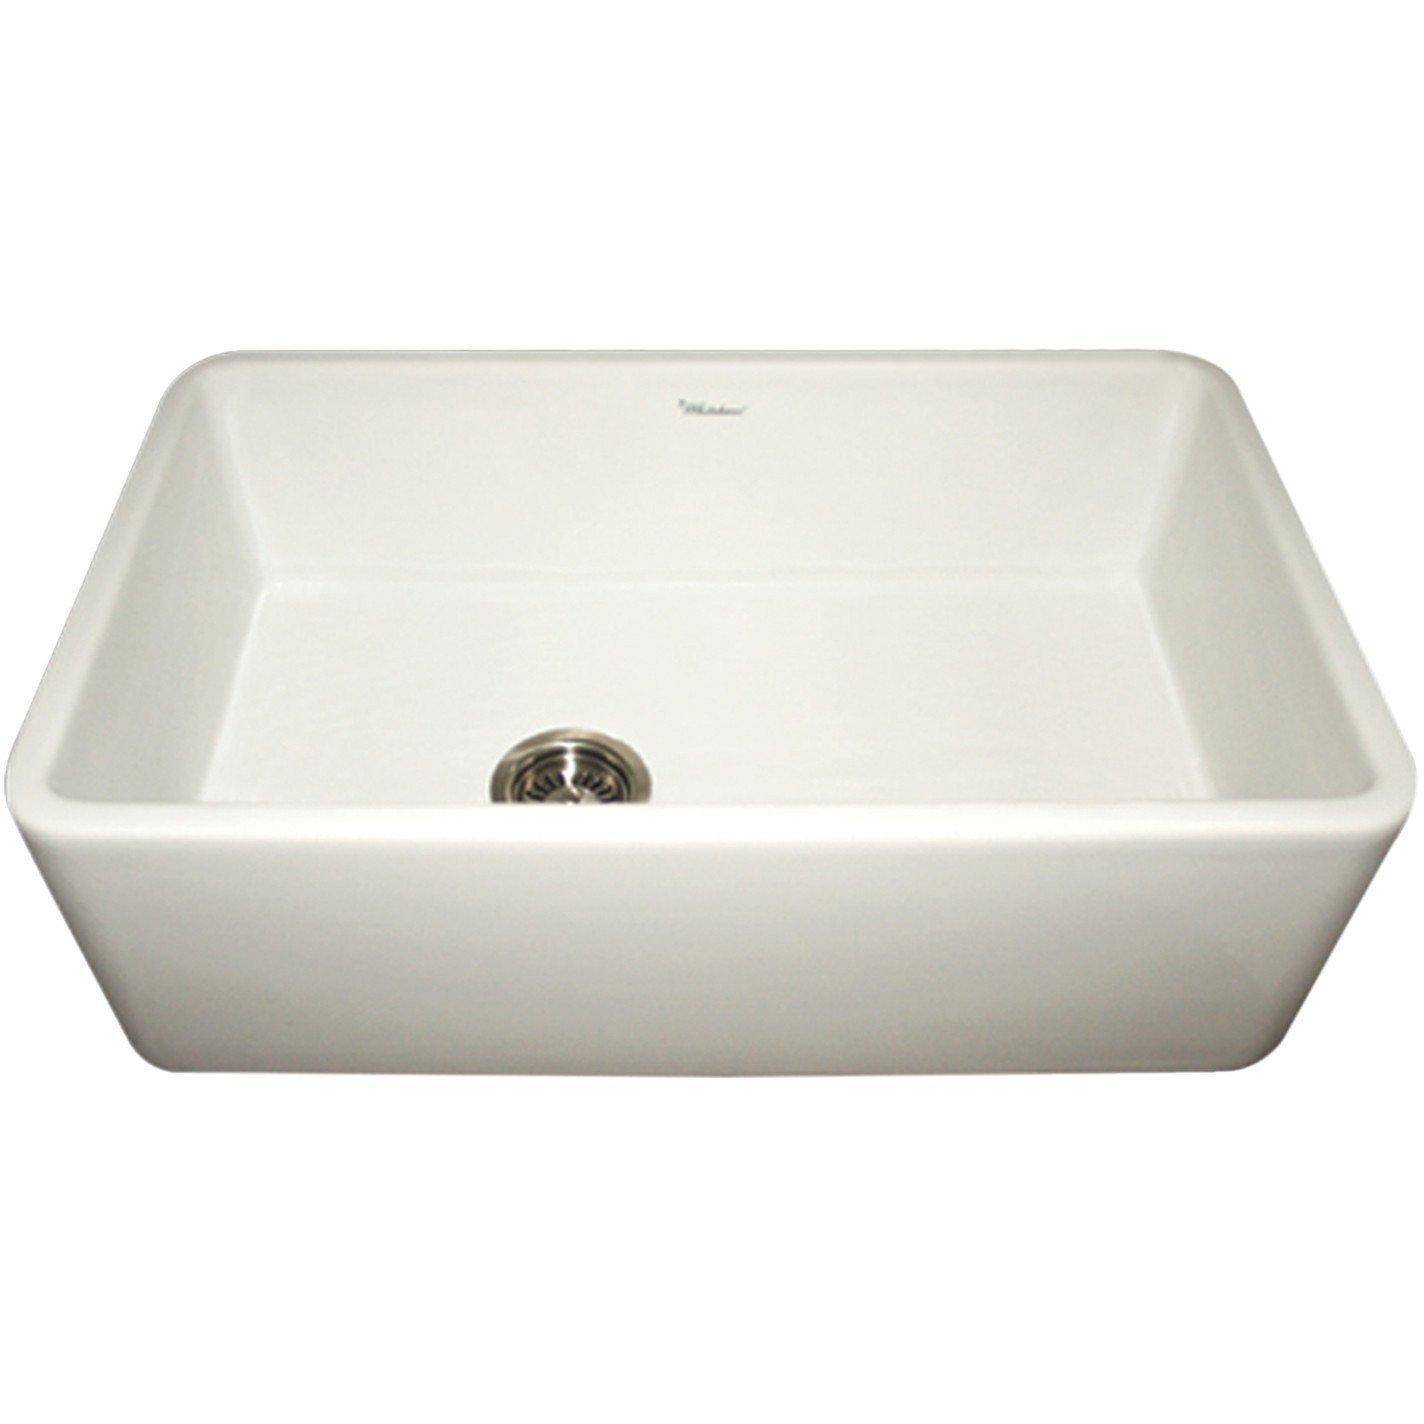 Whitehaus Wh3018 Duet 30 White Single Bowl Fireclay Reversible Farmhouse Sink Farmhouse Sink Kitchen Sink Single Bowl Sink